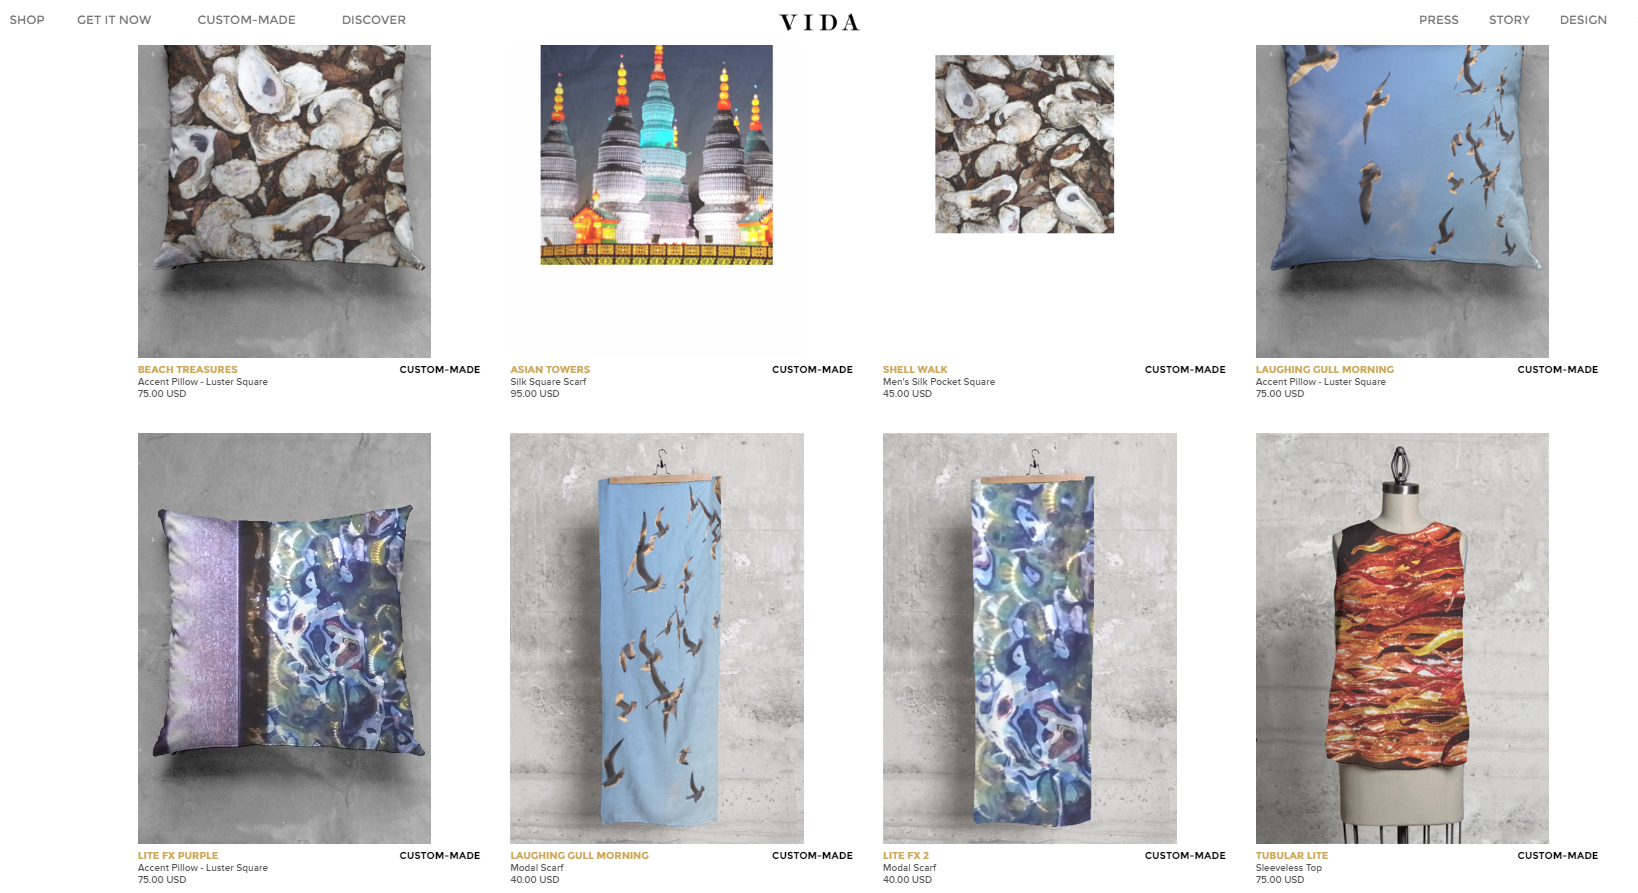 Vida Shop - Lois Gallo Collection